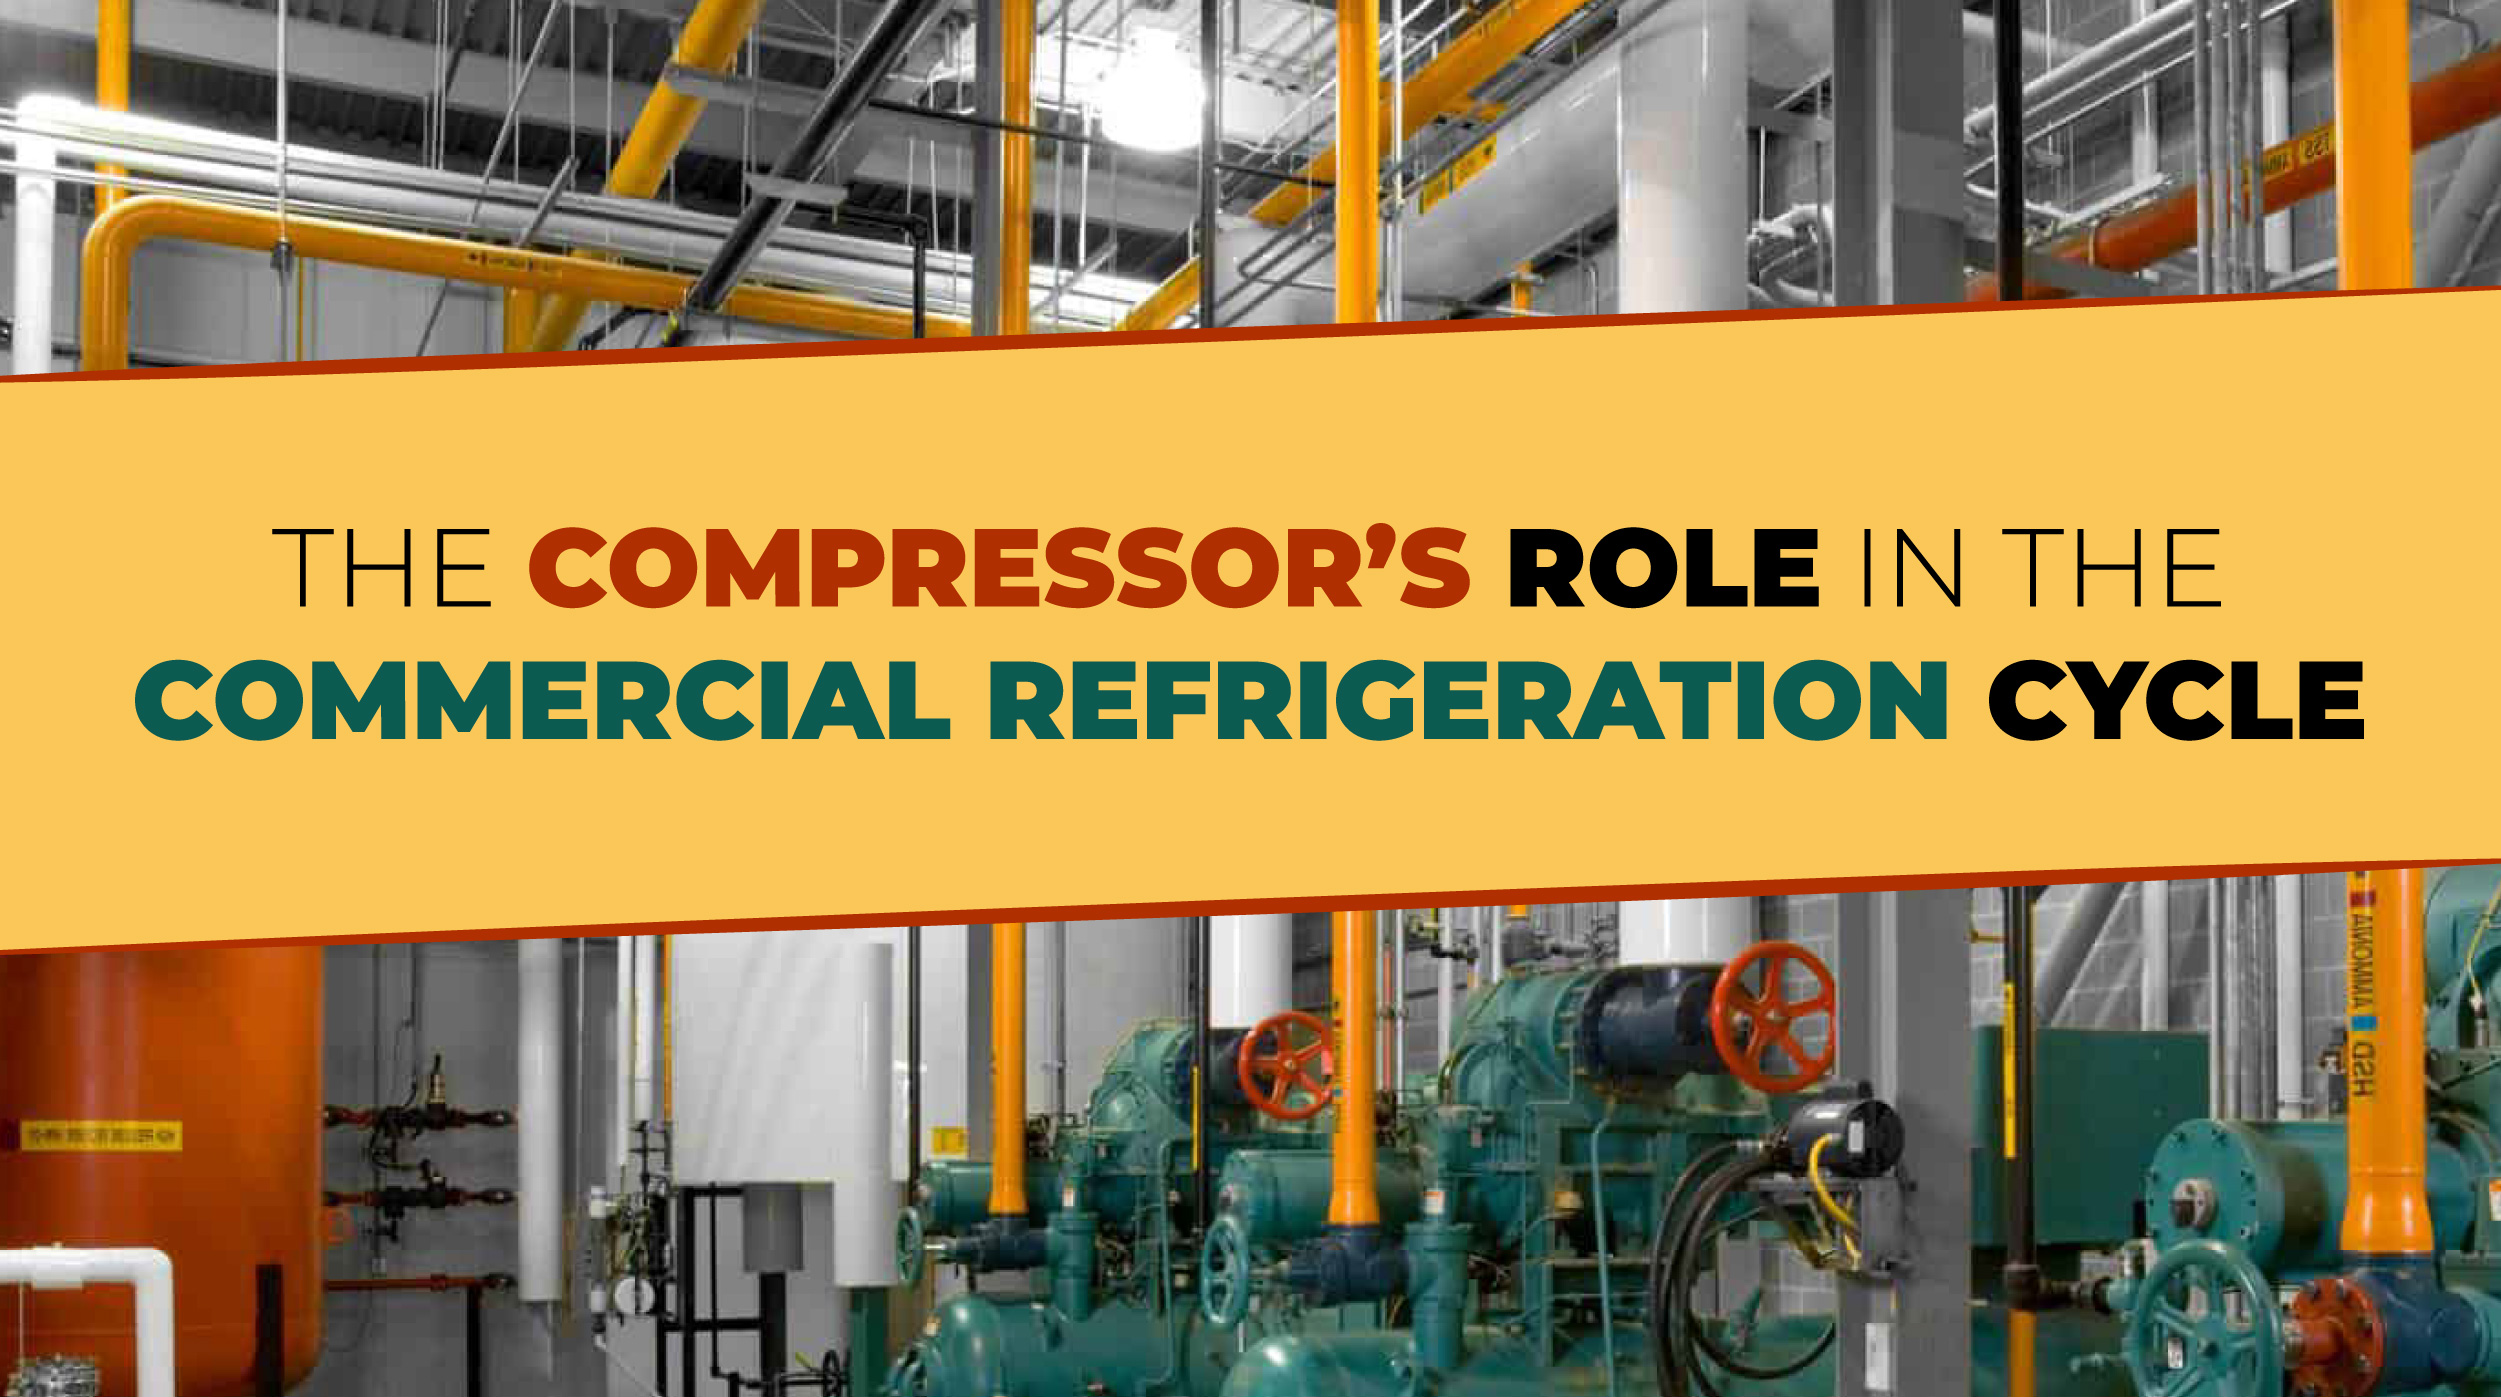 Compressor's Role in the Commercial Refrigeration Cycle